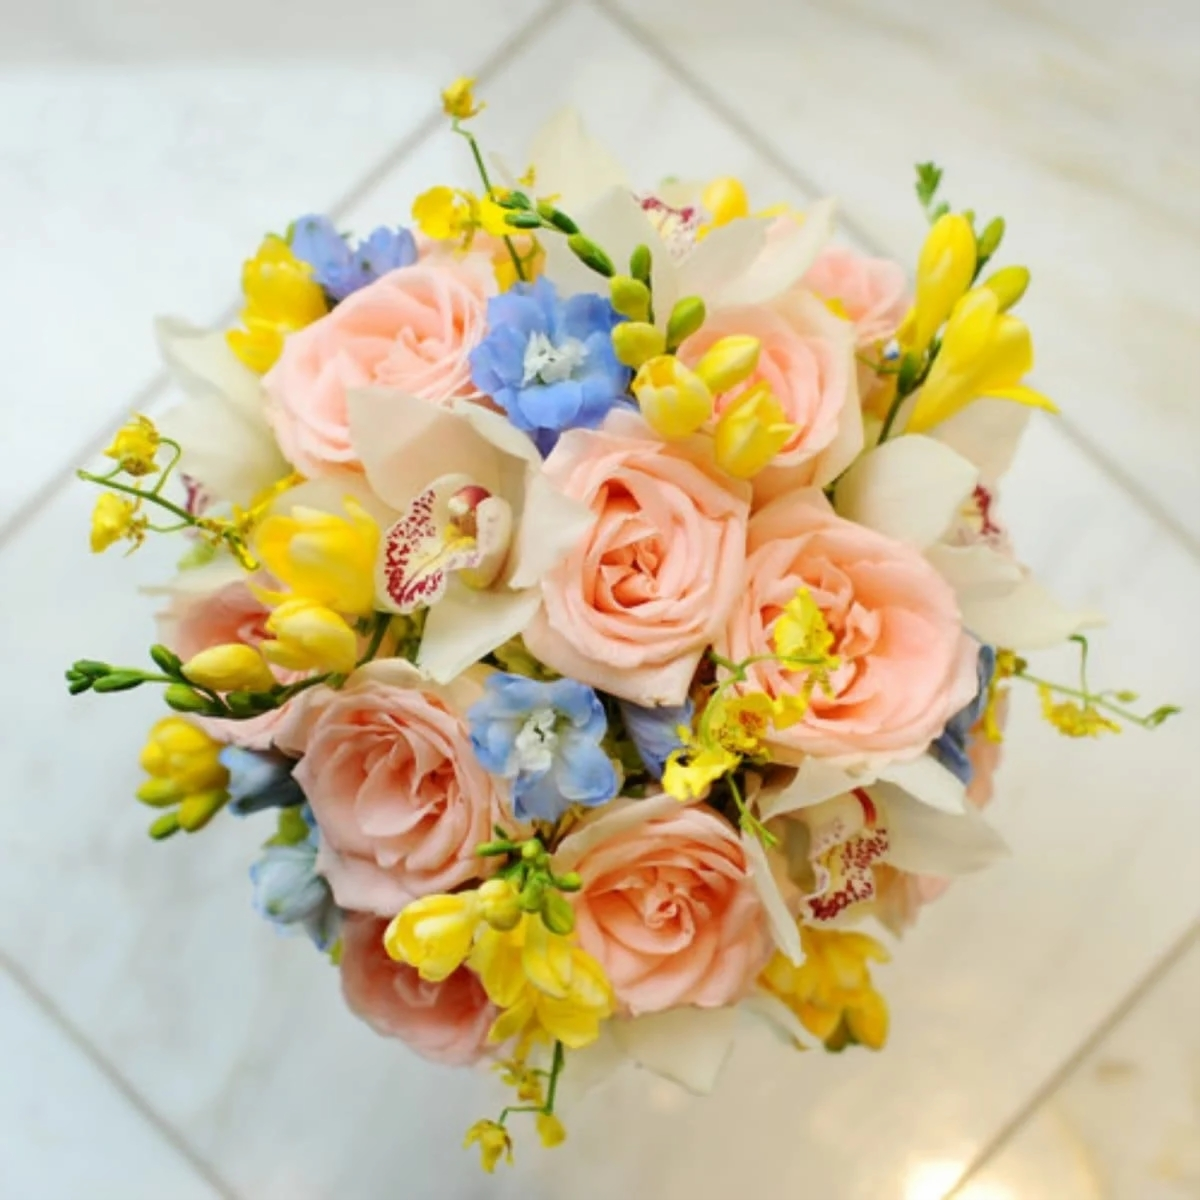 20 Best Flower Delivery Services in New Orleans - Petal ...